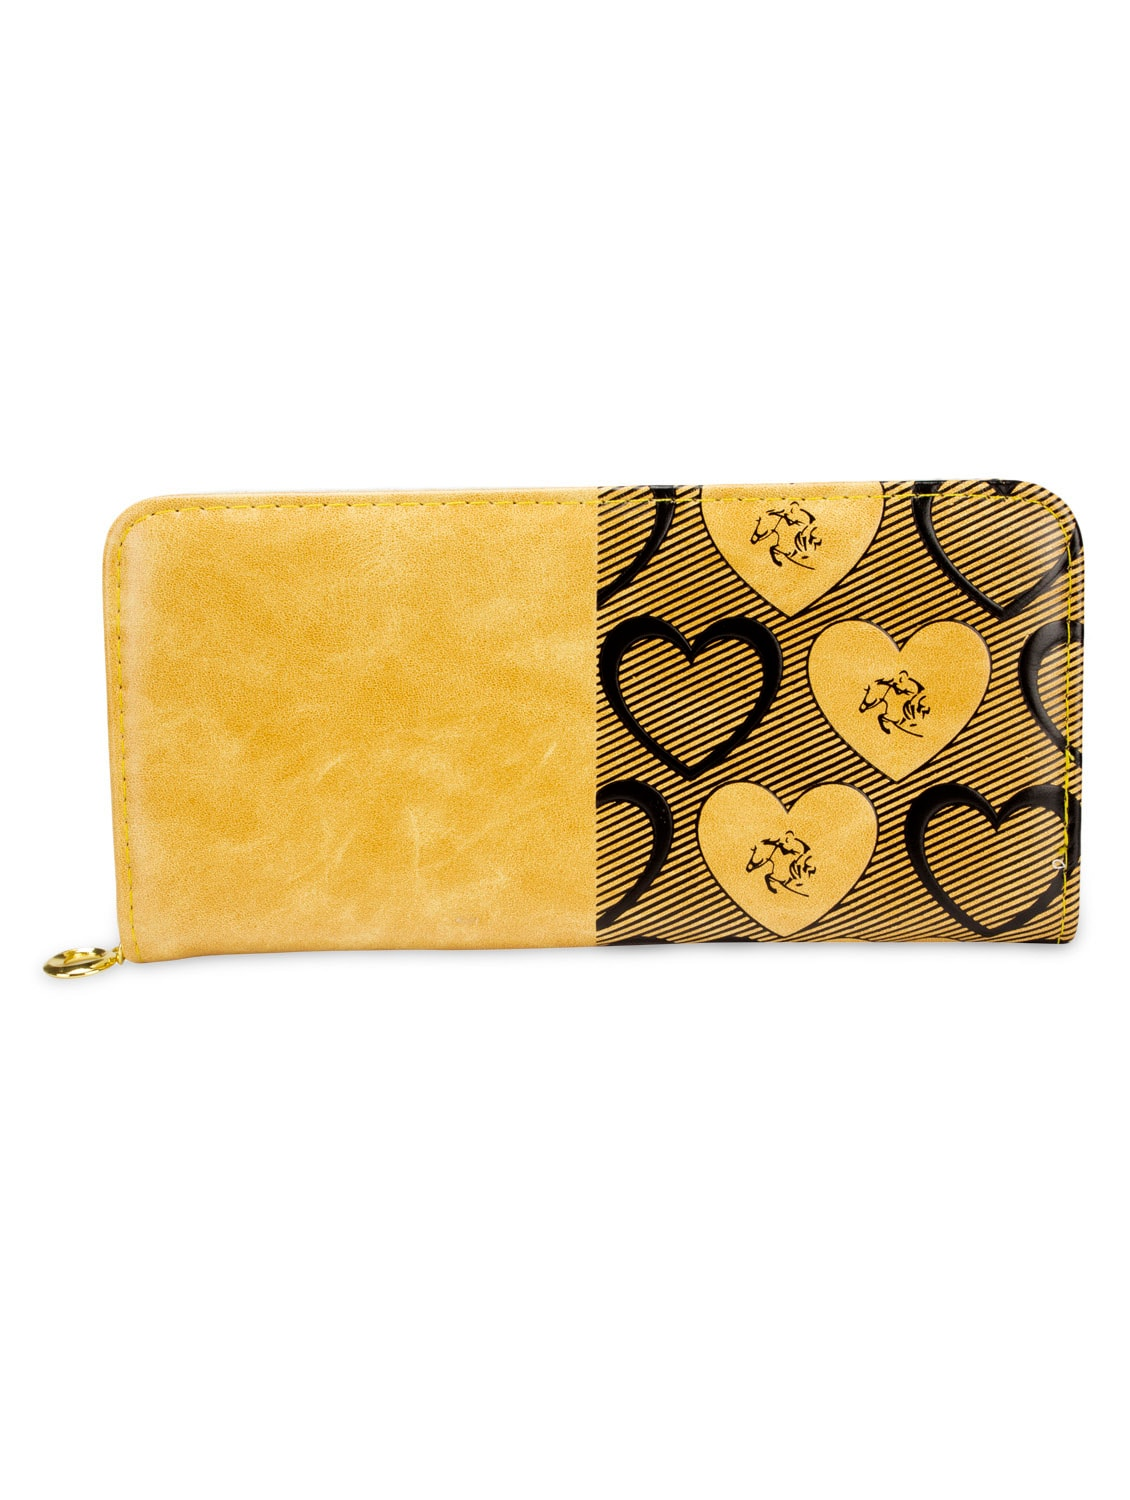 Yellow Leatherette Printed Clutch - By